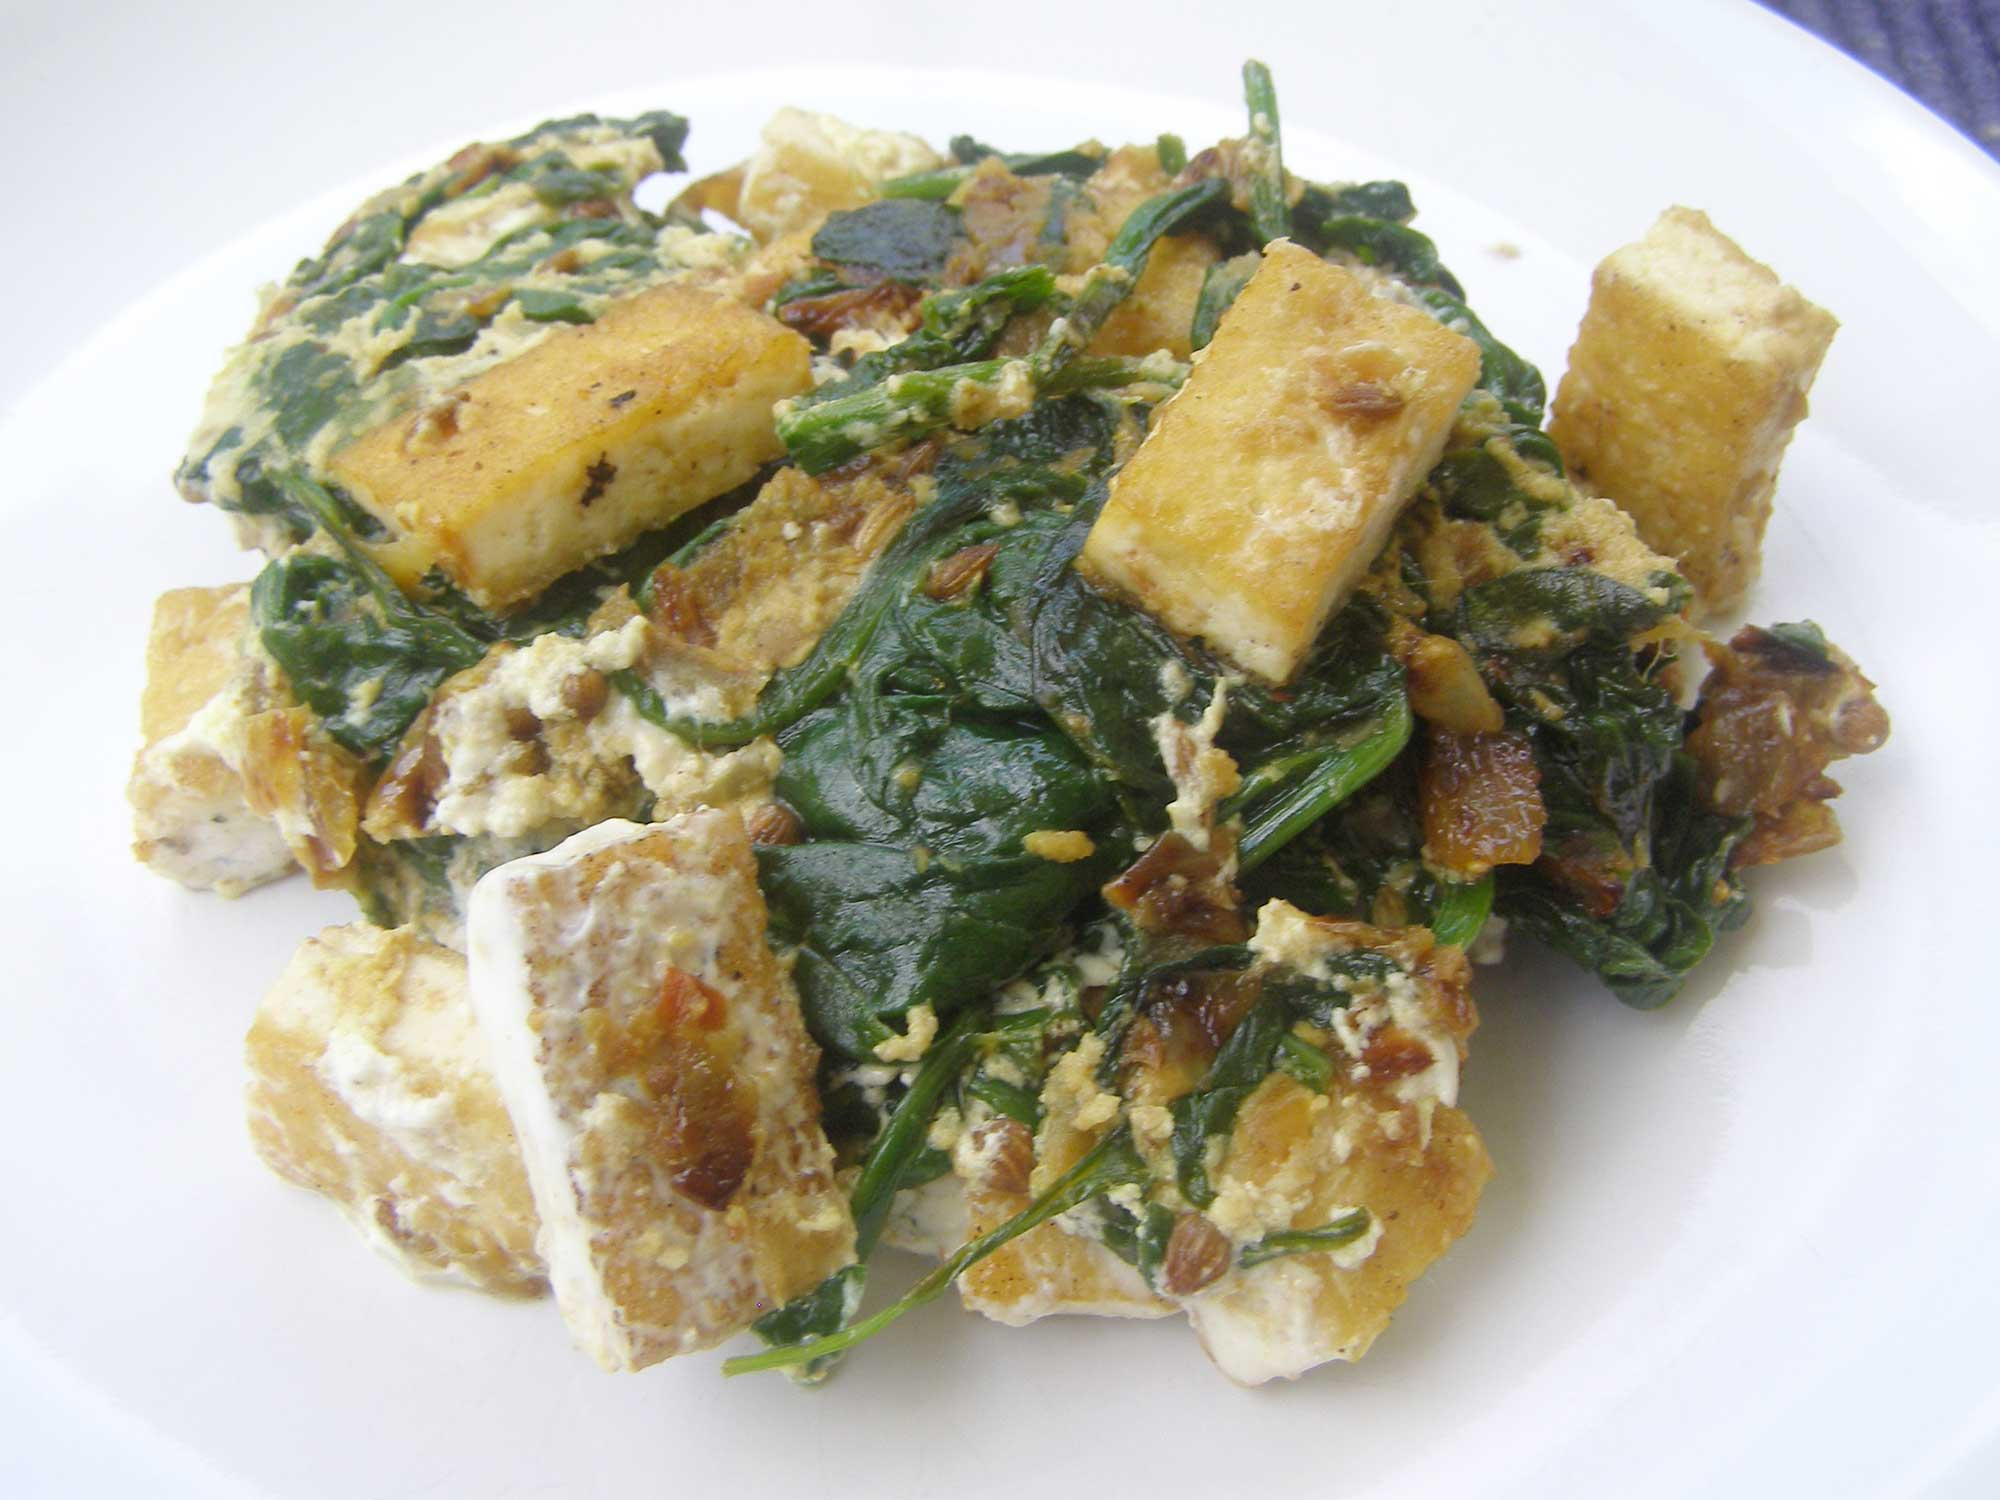 Tofu Saag Paneer (Tofu With Spinach, Ginger, Coriander and Turmeric) for one